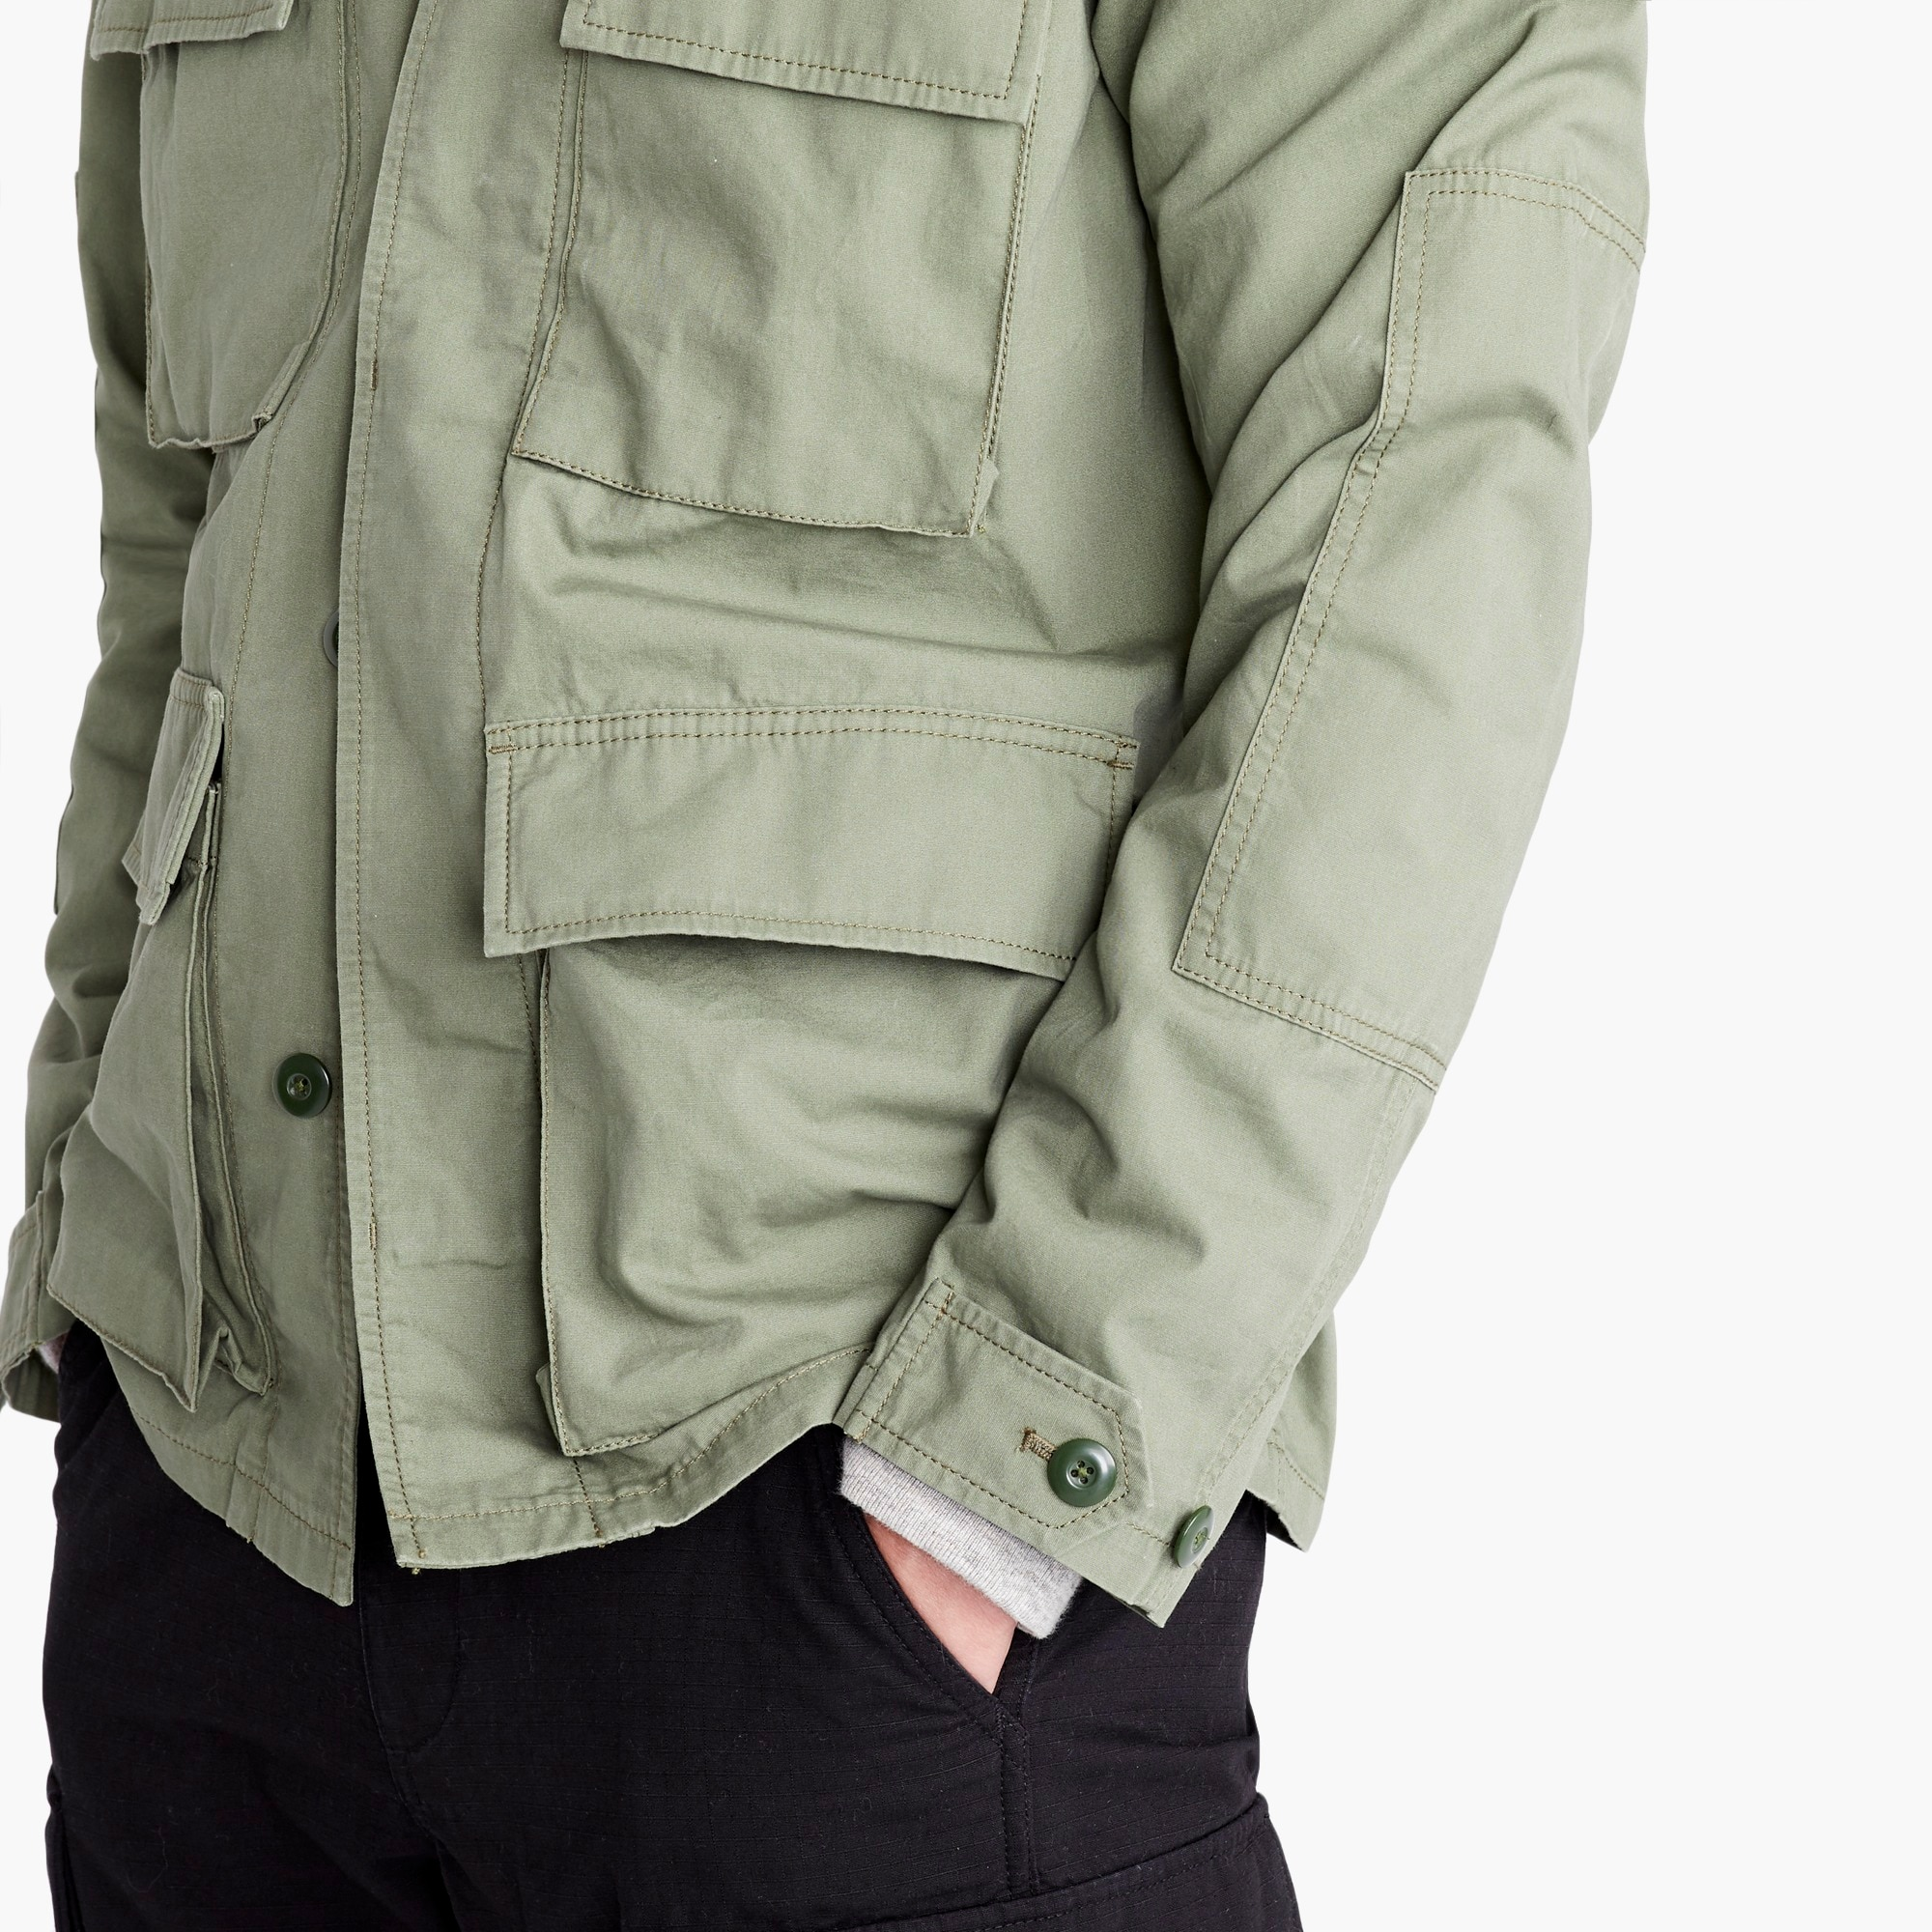 Image 5 for J.Crew Mercantile field jacket